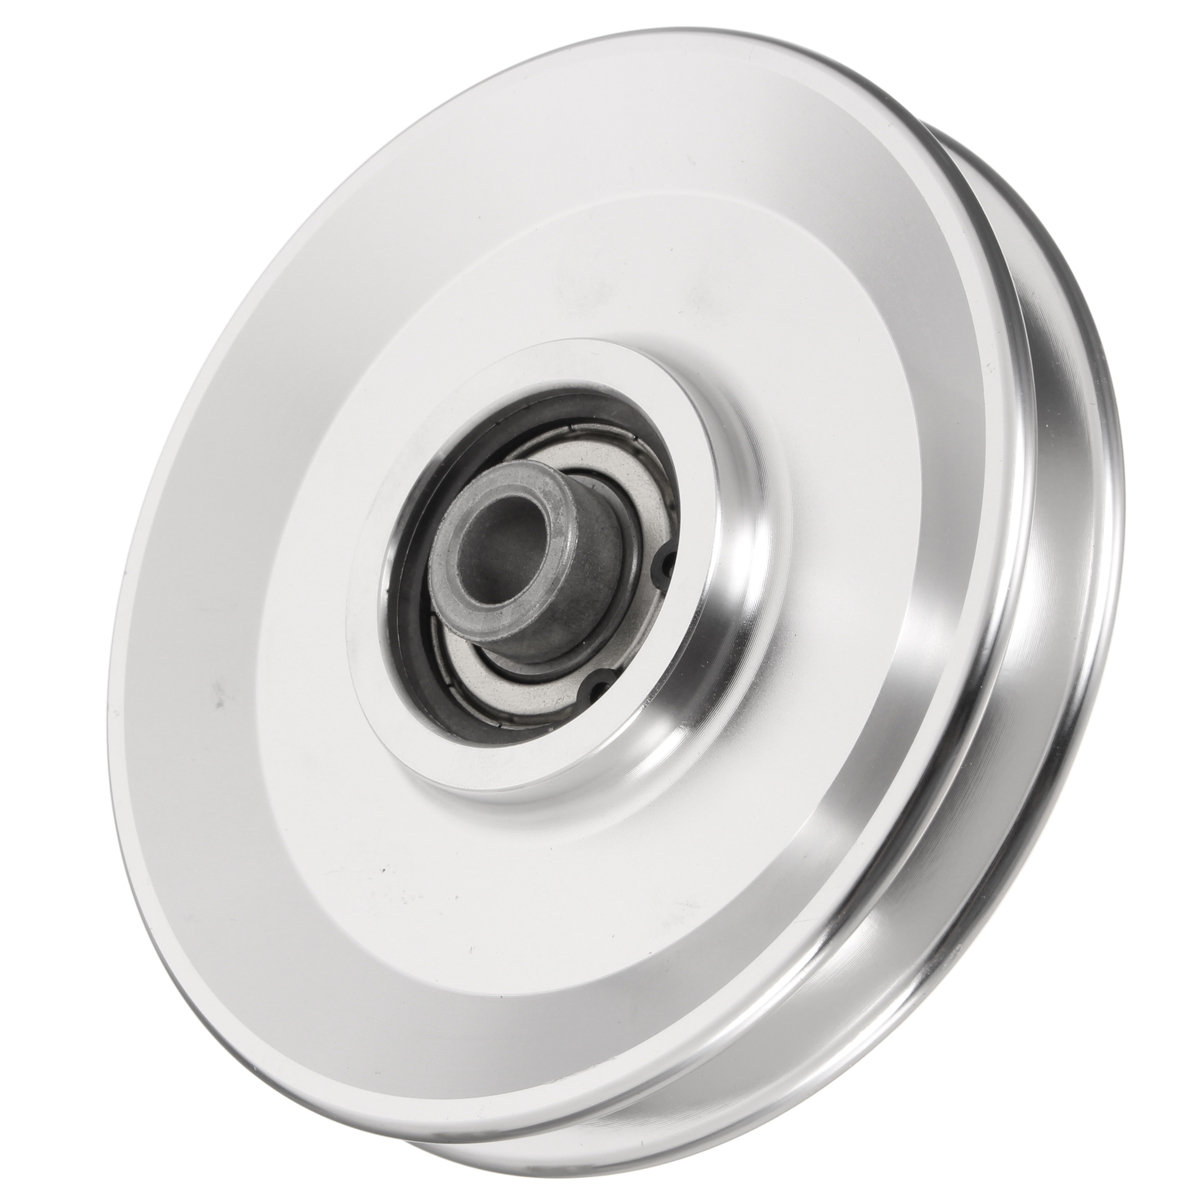 Fitness Equipment Parts: 73/95/110/114mm Silver Bearing Pulley Wheel Cable Gym